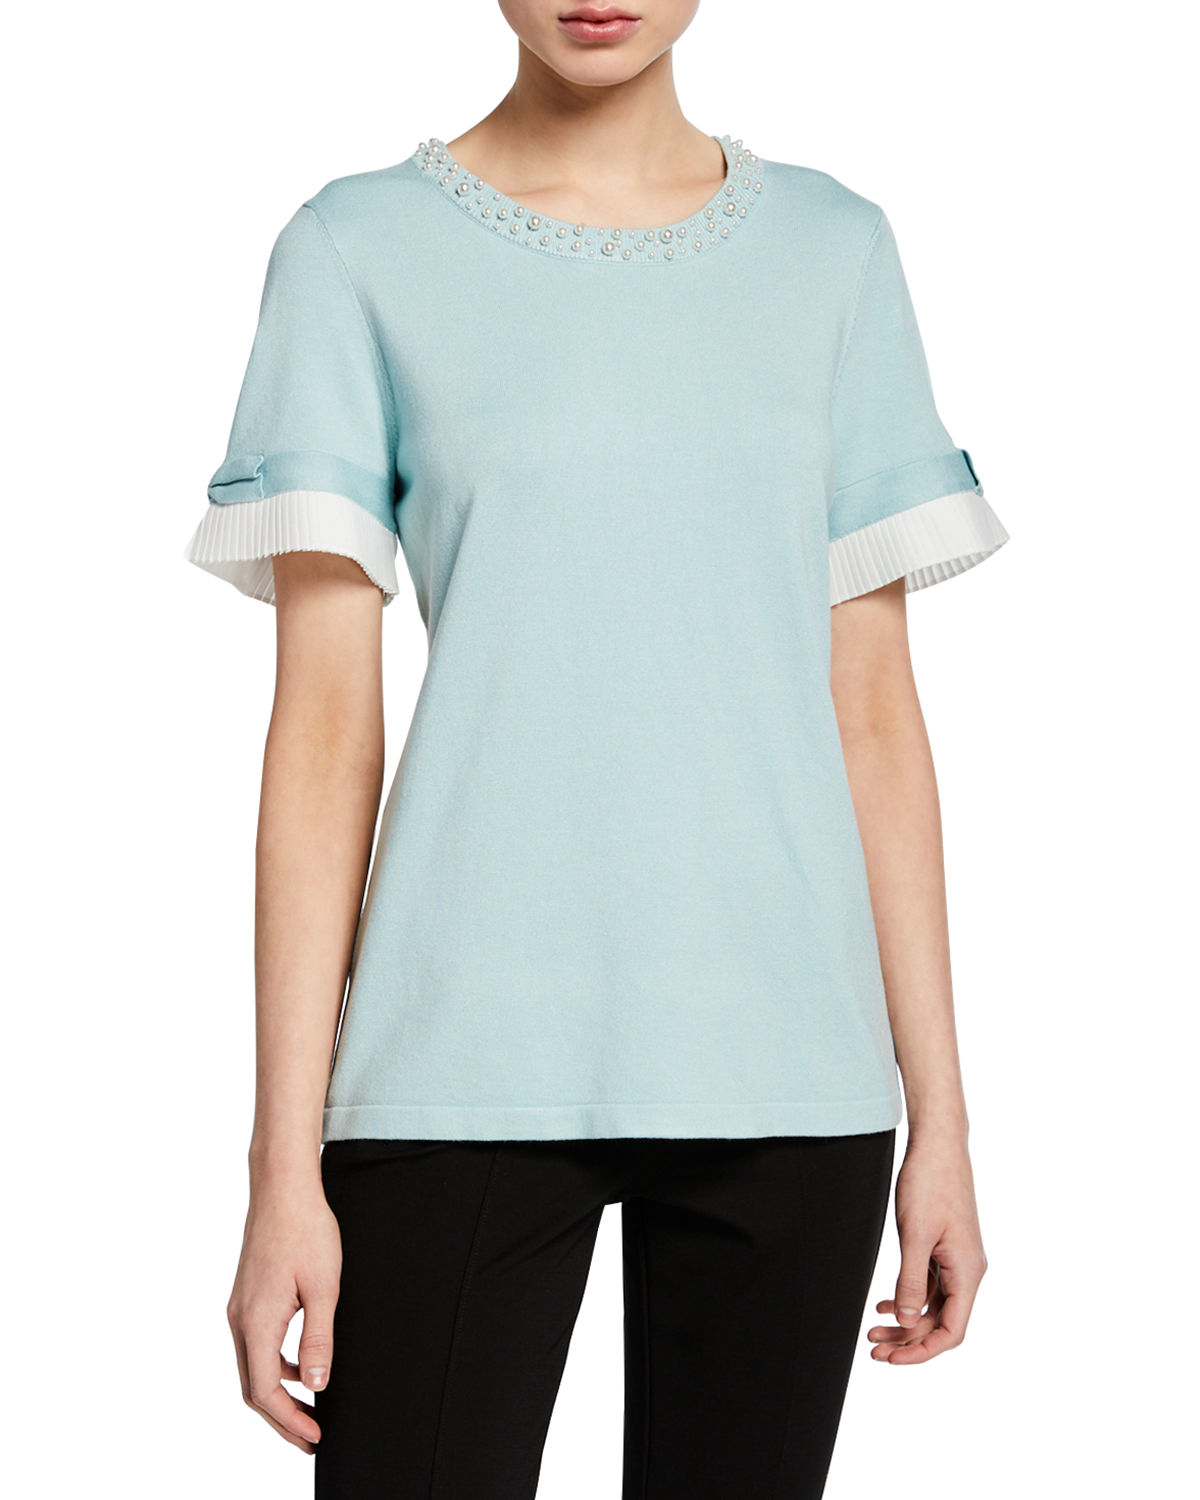 Karl Lagerfeld Sweaters Short-Sleeve Sweater w/ Pearl & Pleated Trim, GREEN